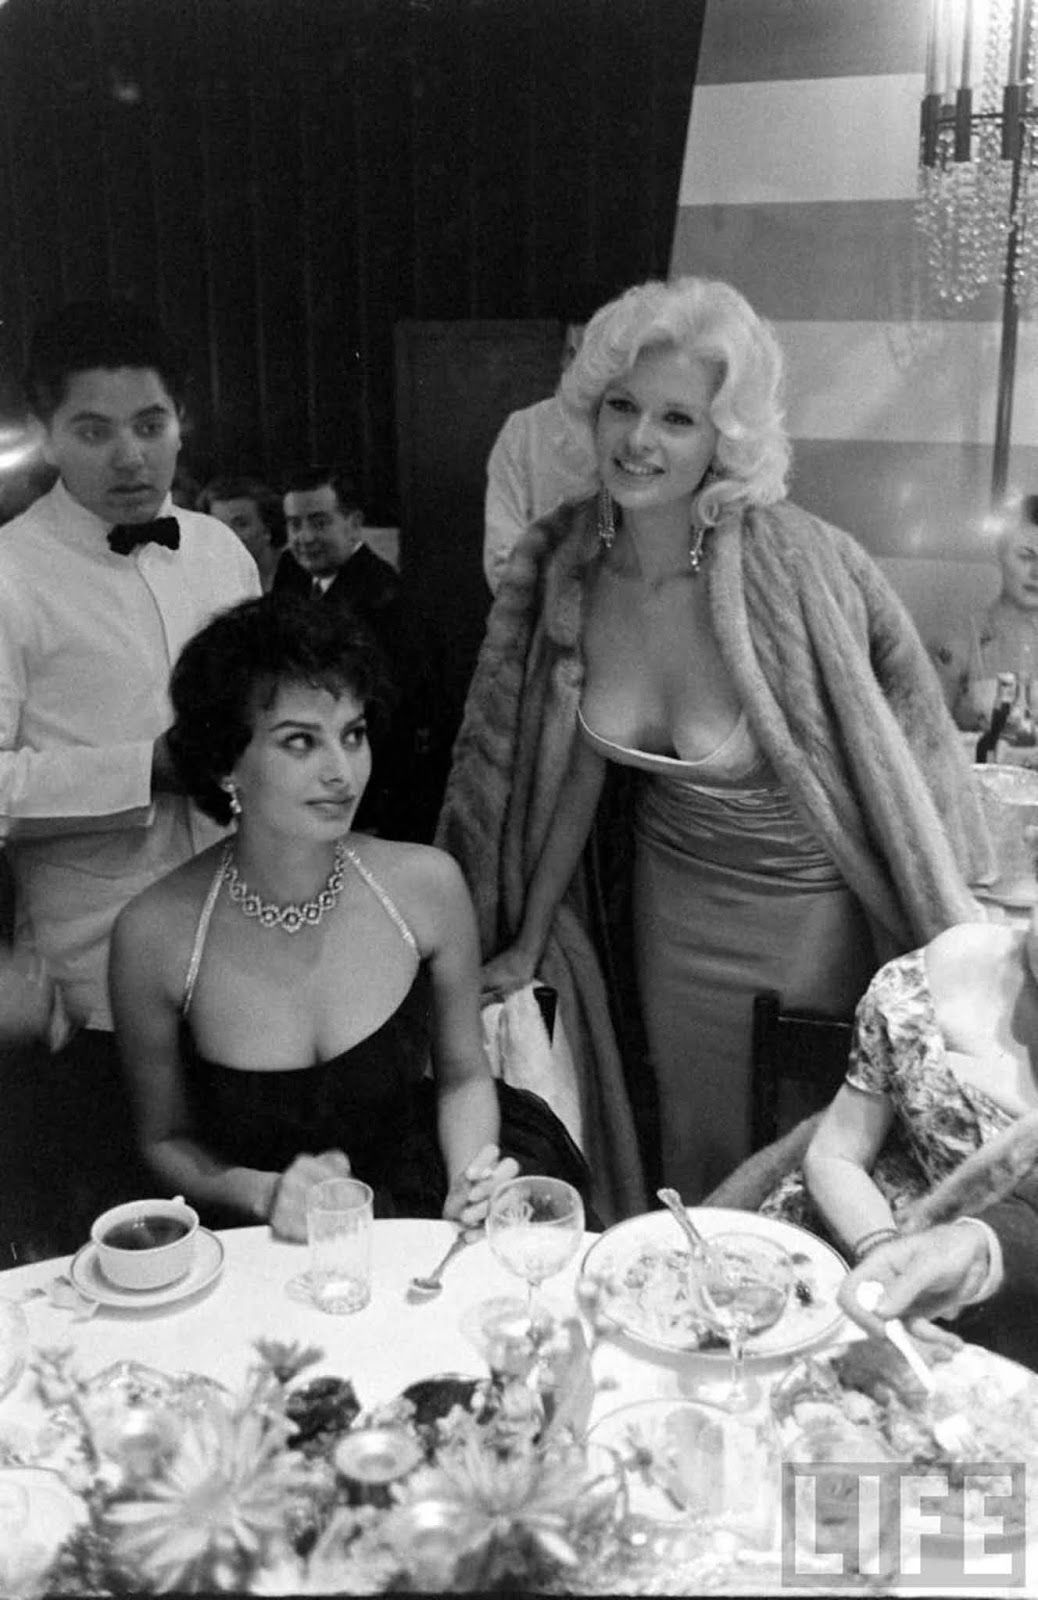 The story behind the infamous Sophia Loren and Jay